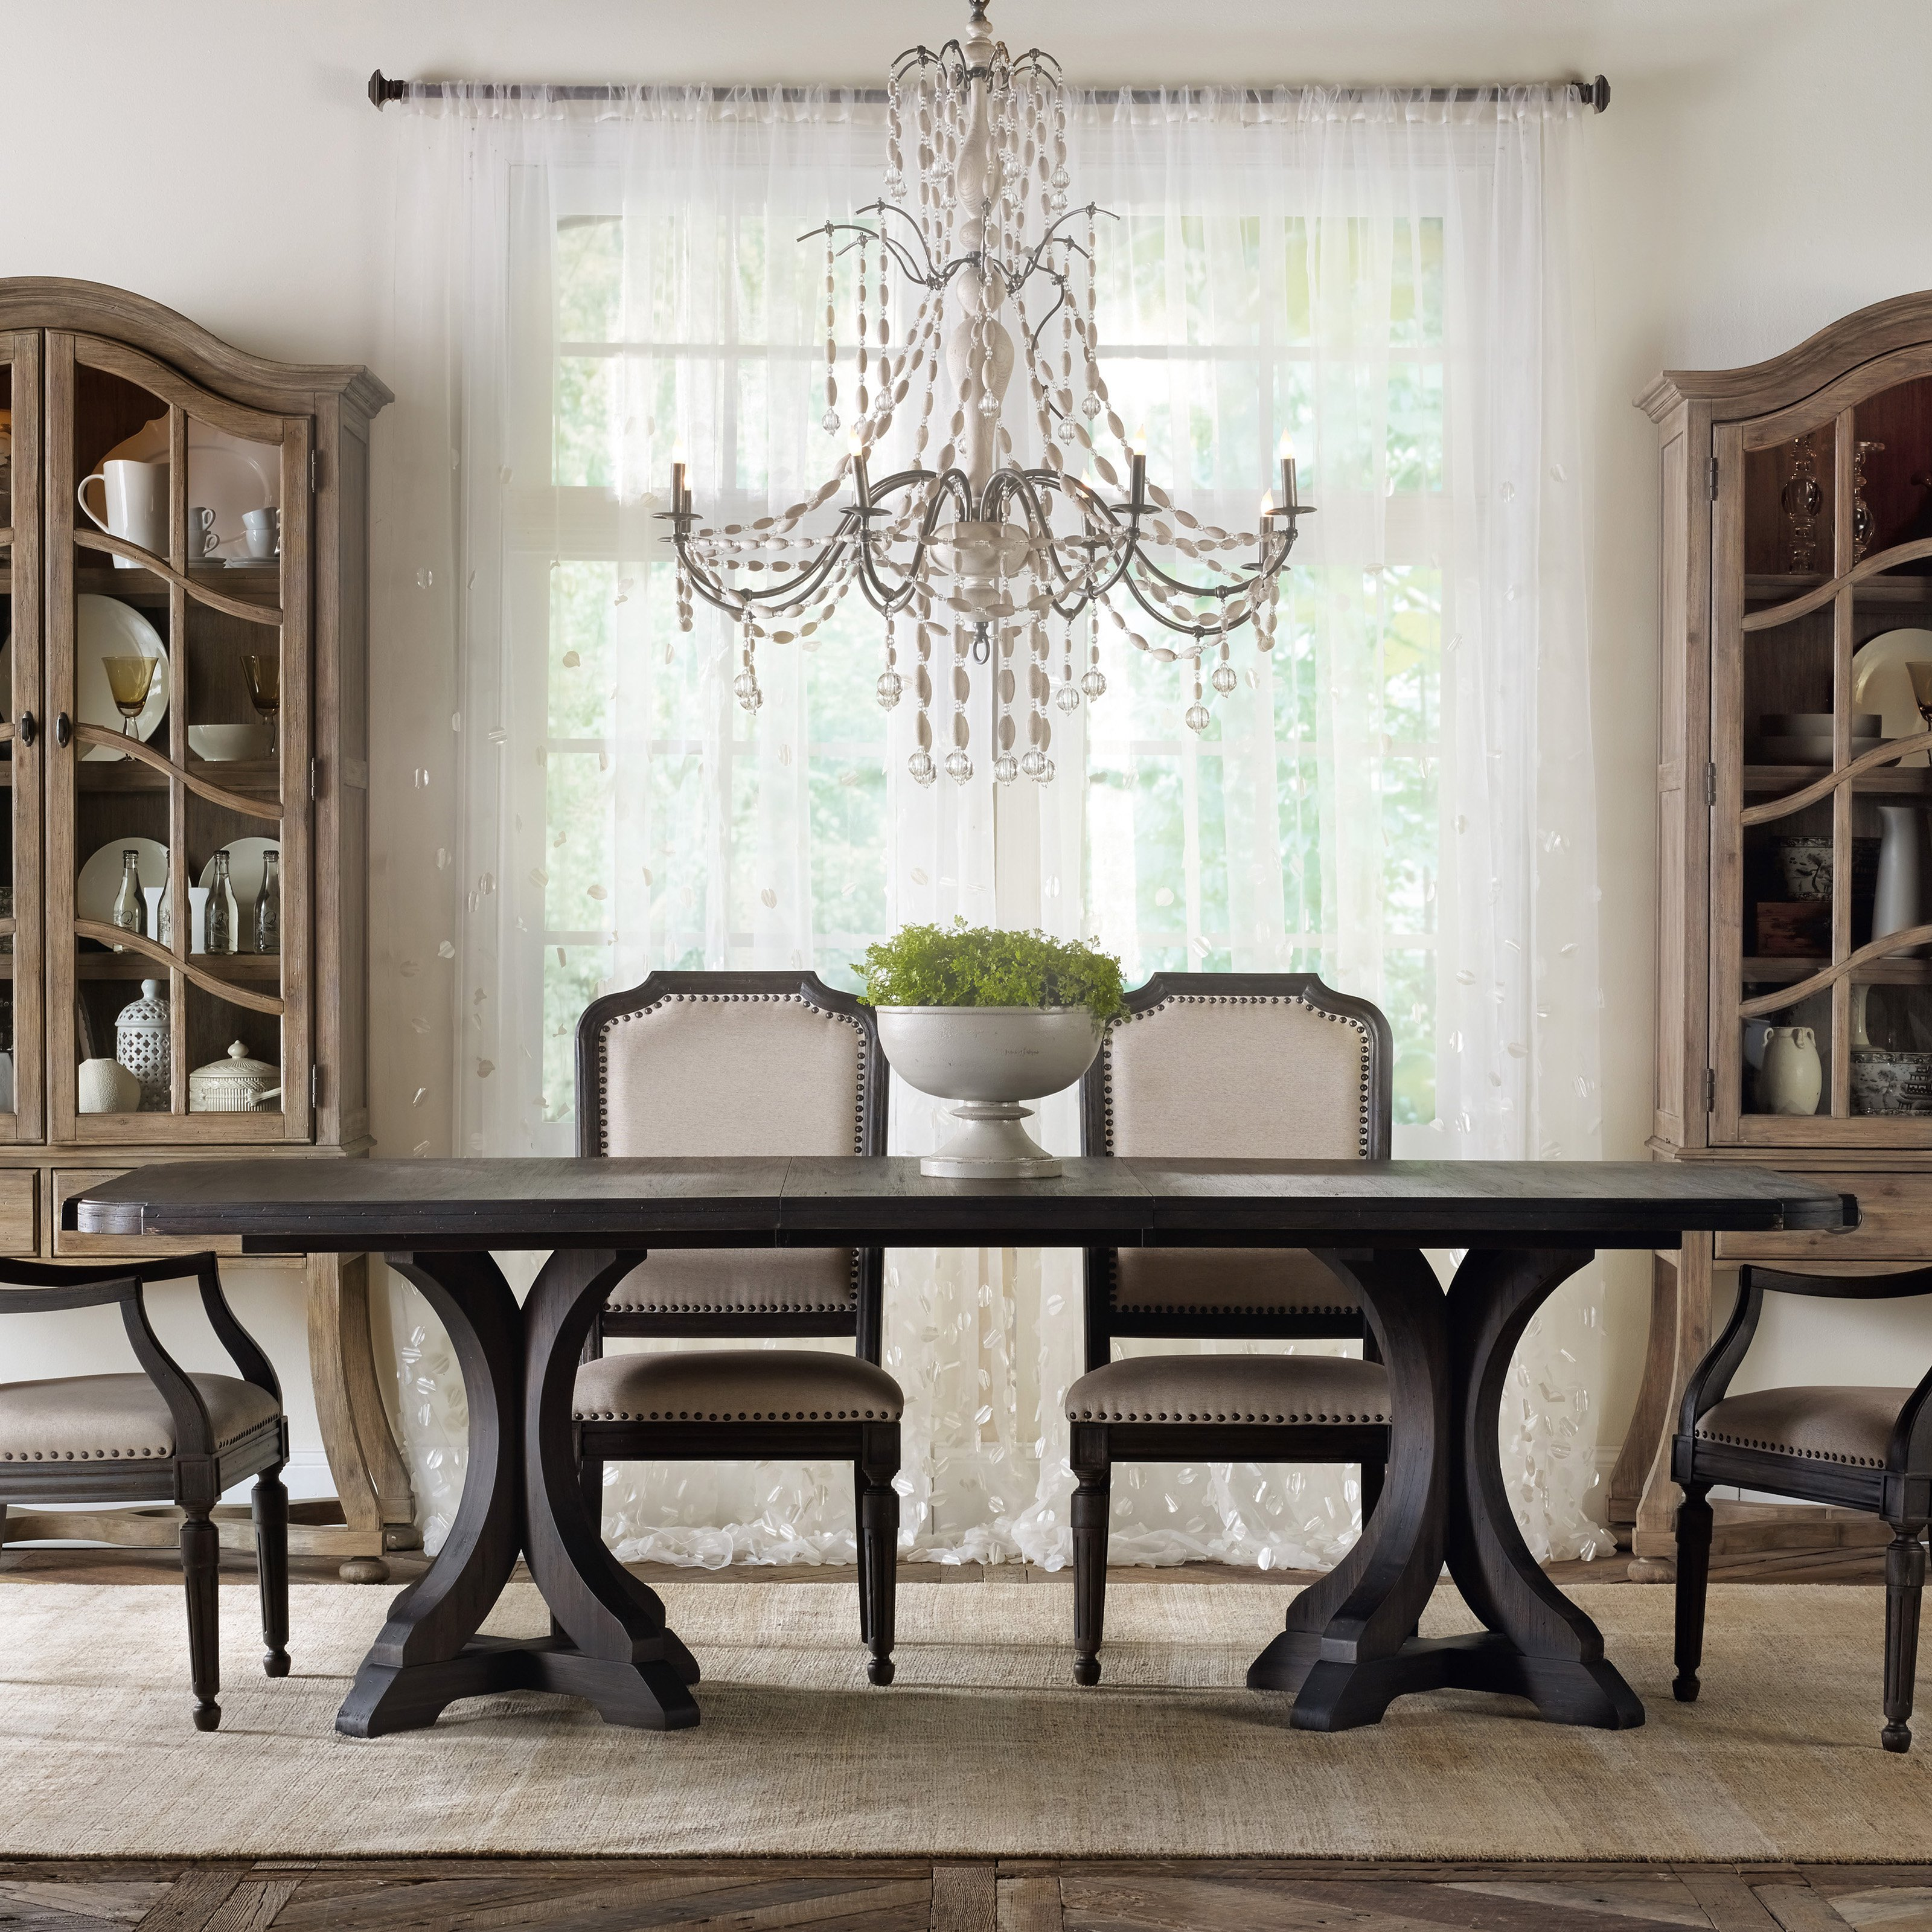 dining room furniture clearance suitable with dining room furniture cork suitable with dining room furniture chairs